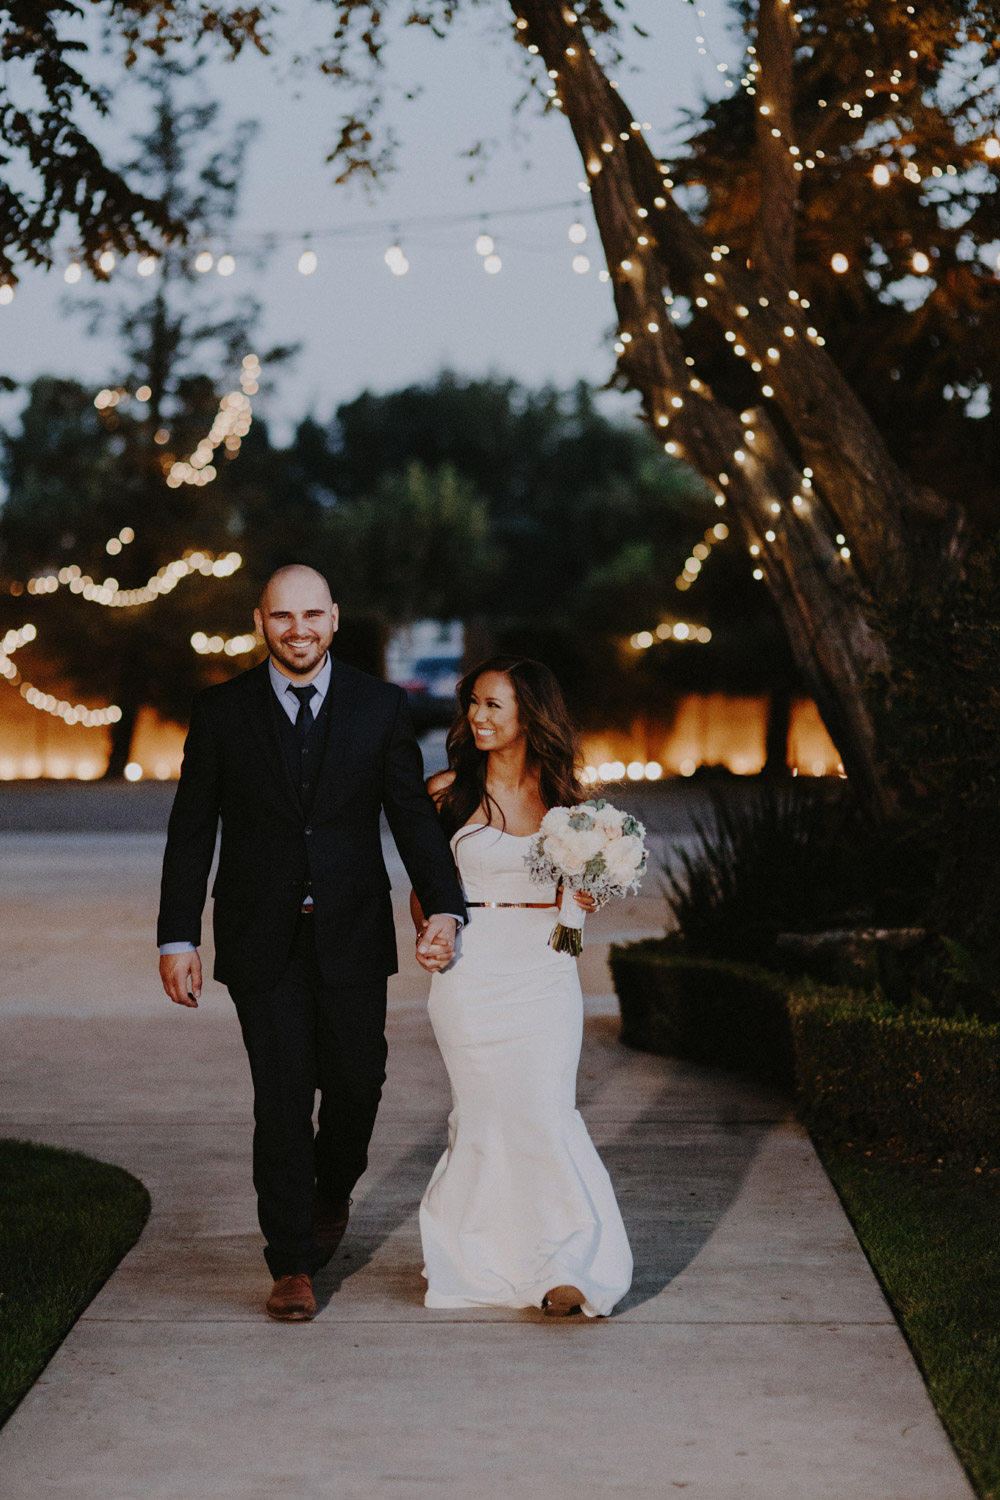 Greg-Petersen-San-Francisco-Wedding-Photographer-1-85.jpg